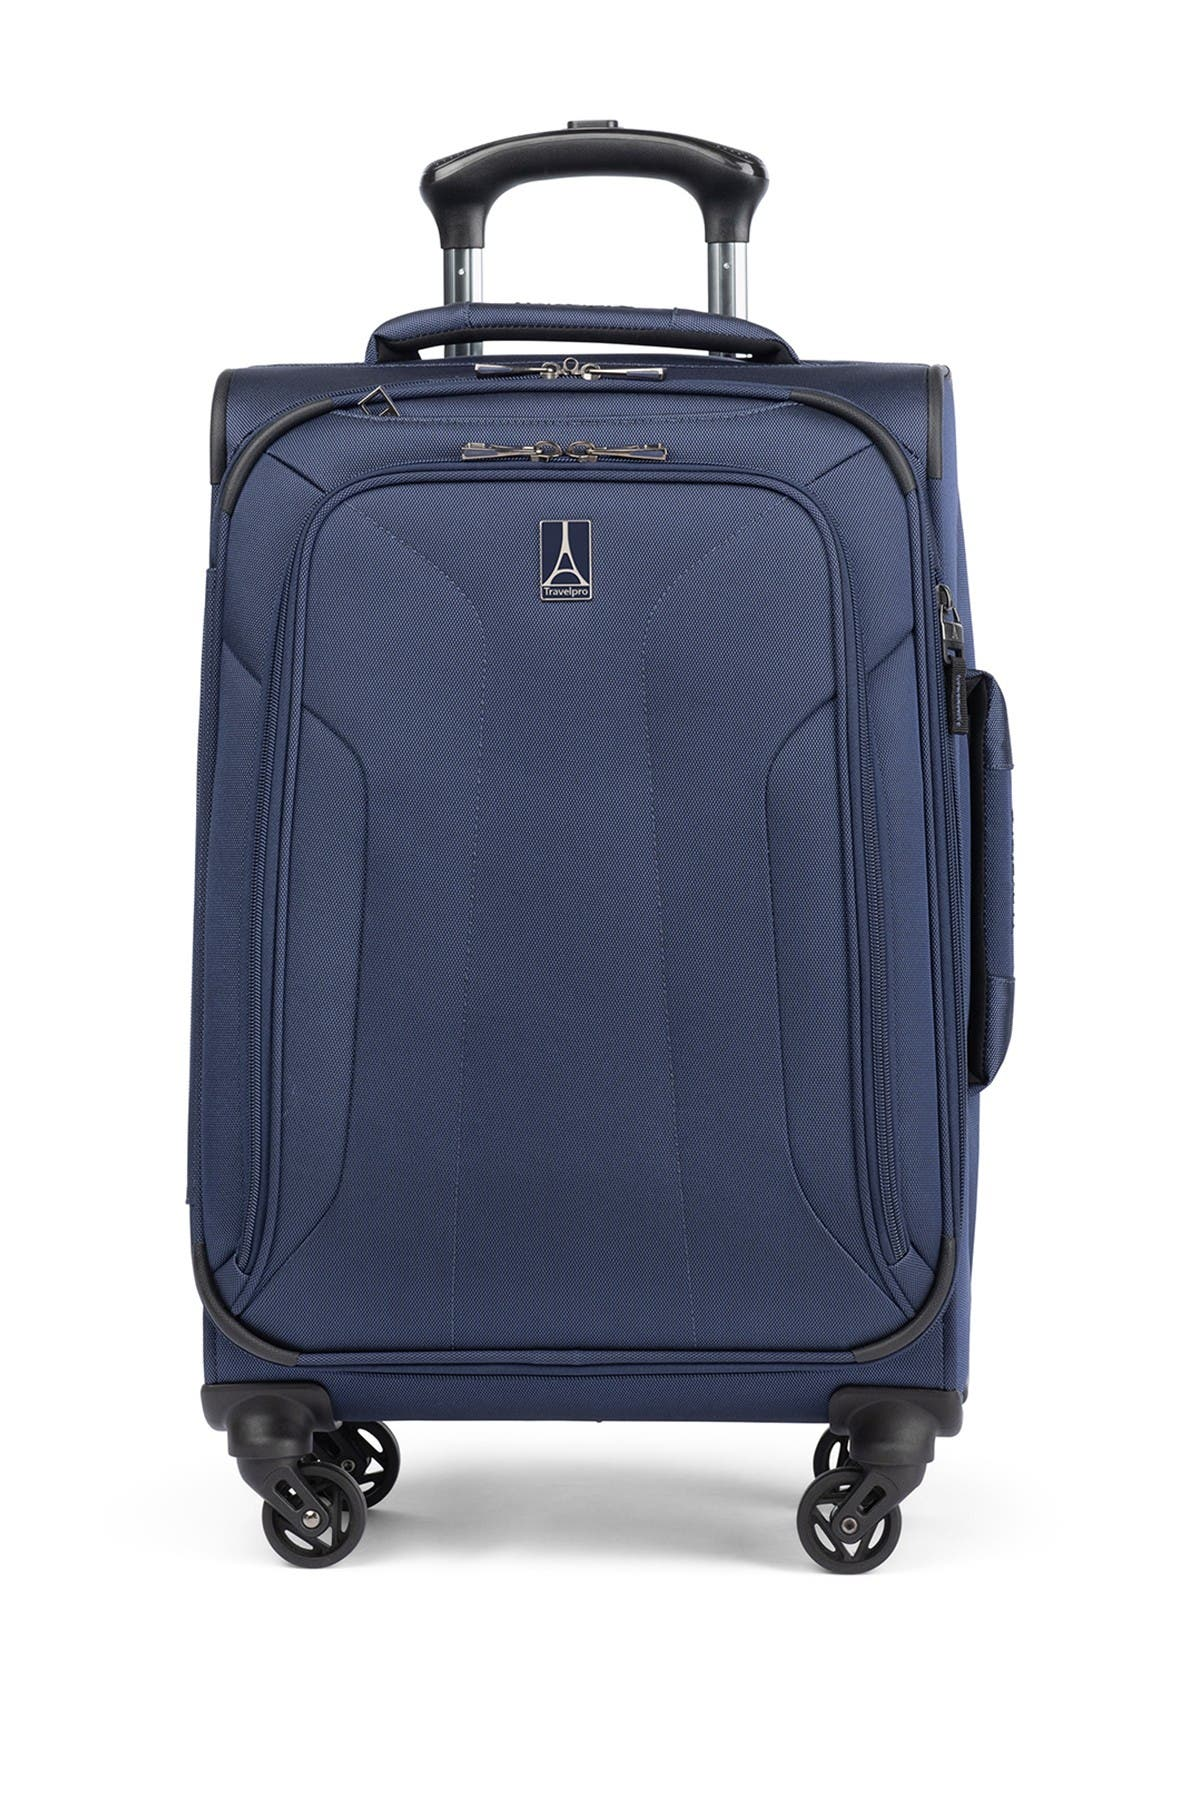 """Image of TRAVELPRO Pilot Air™ Elite 21"""" Expandable Carry-on Spinner Luggage"""